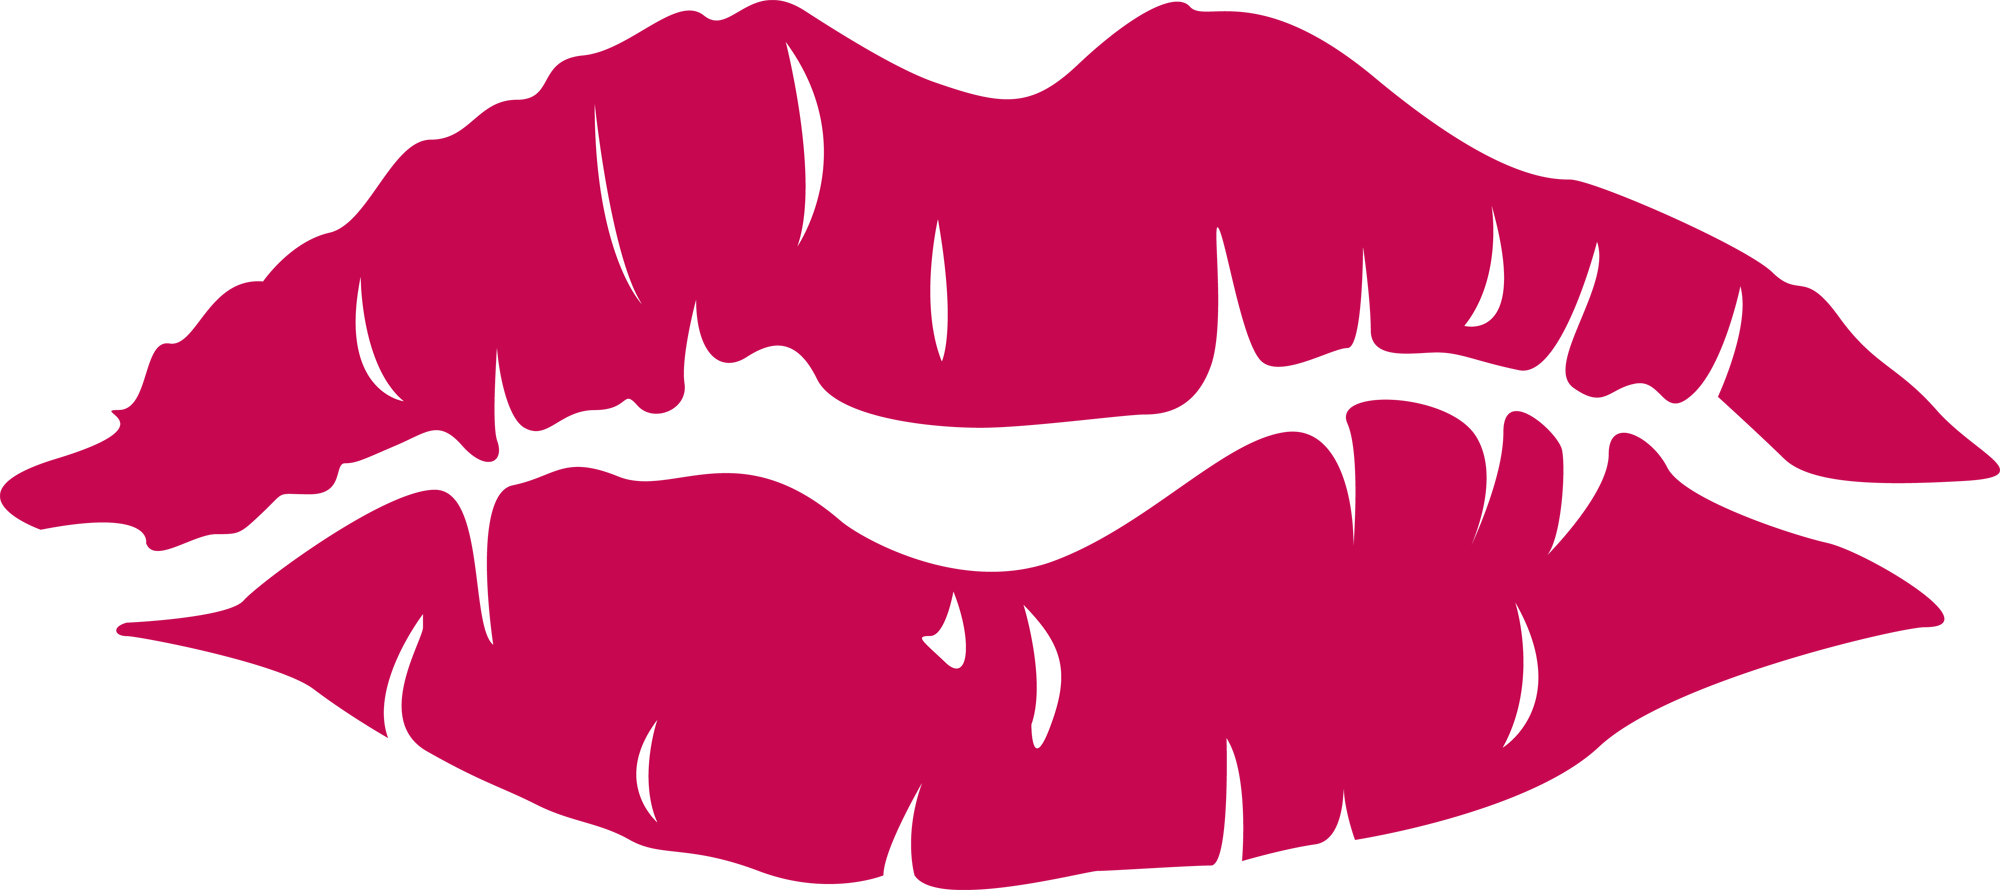 Free Pictures Of Cartoon Lips, Download Free Clip Art, Free.